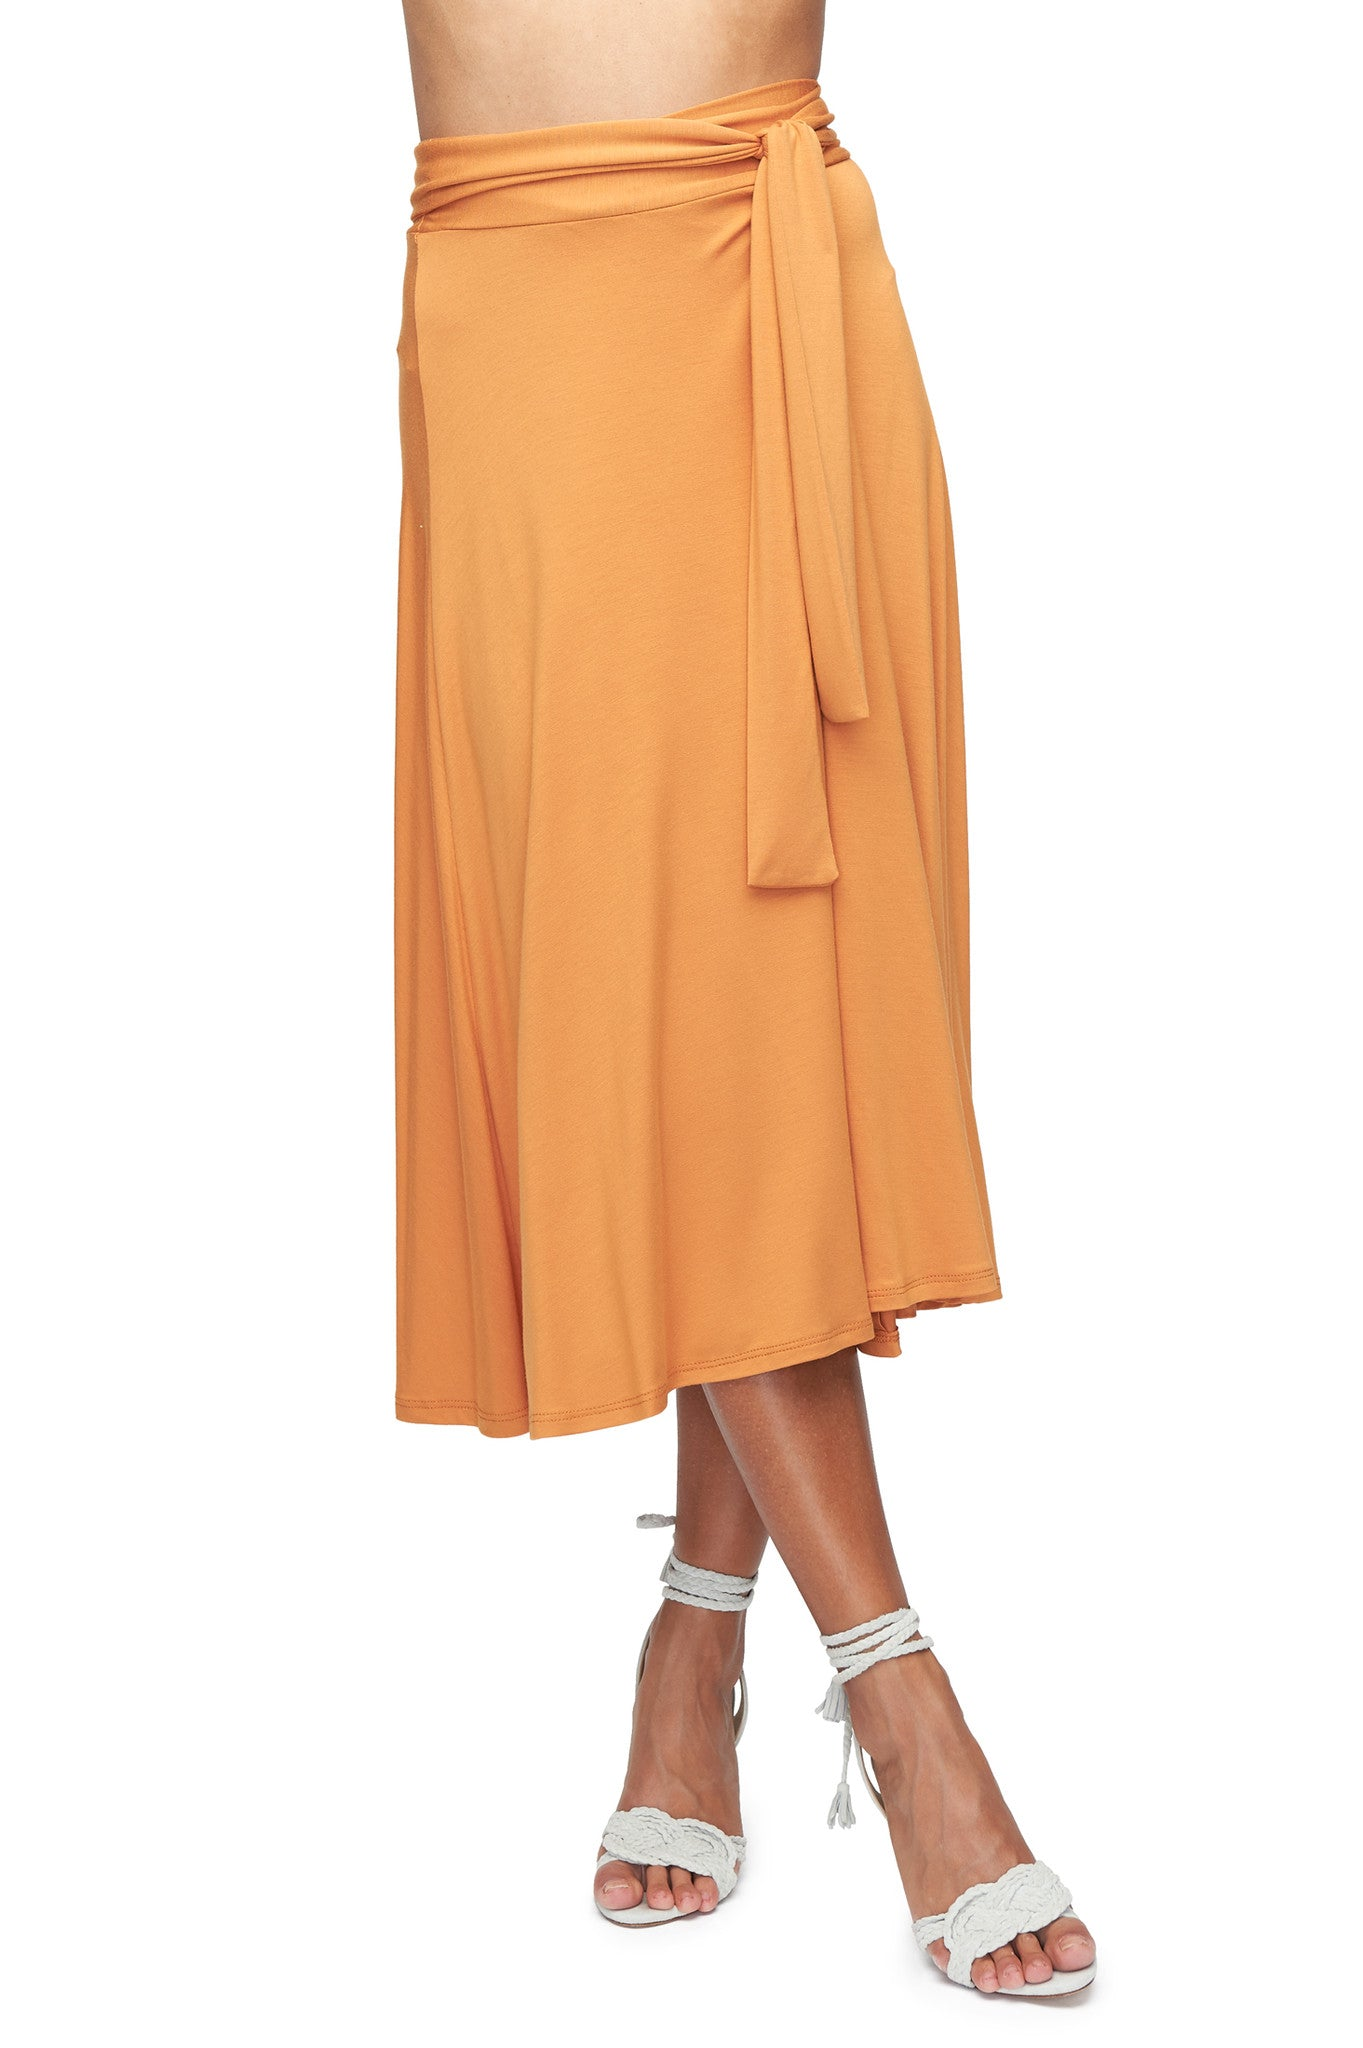 Mid-Length Wrap Skirt - Flan